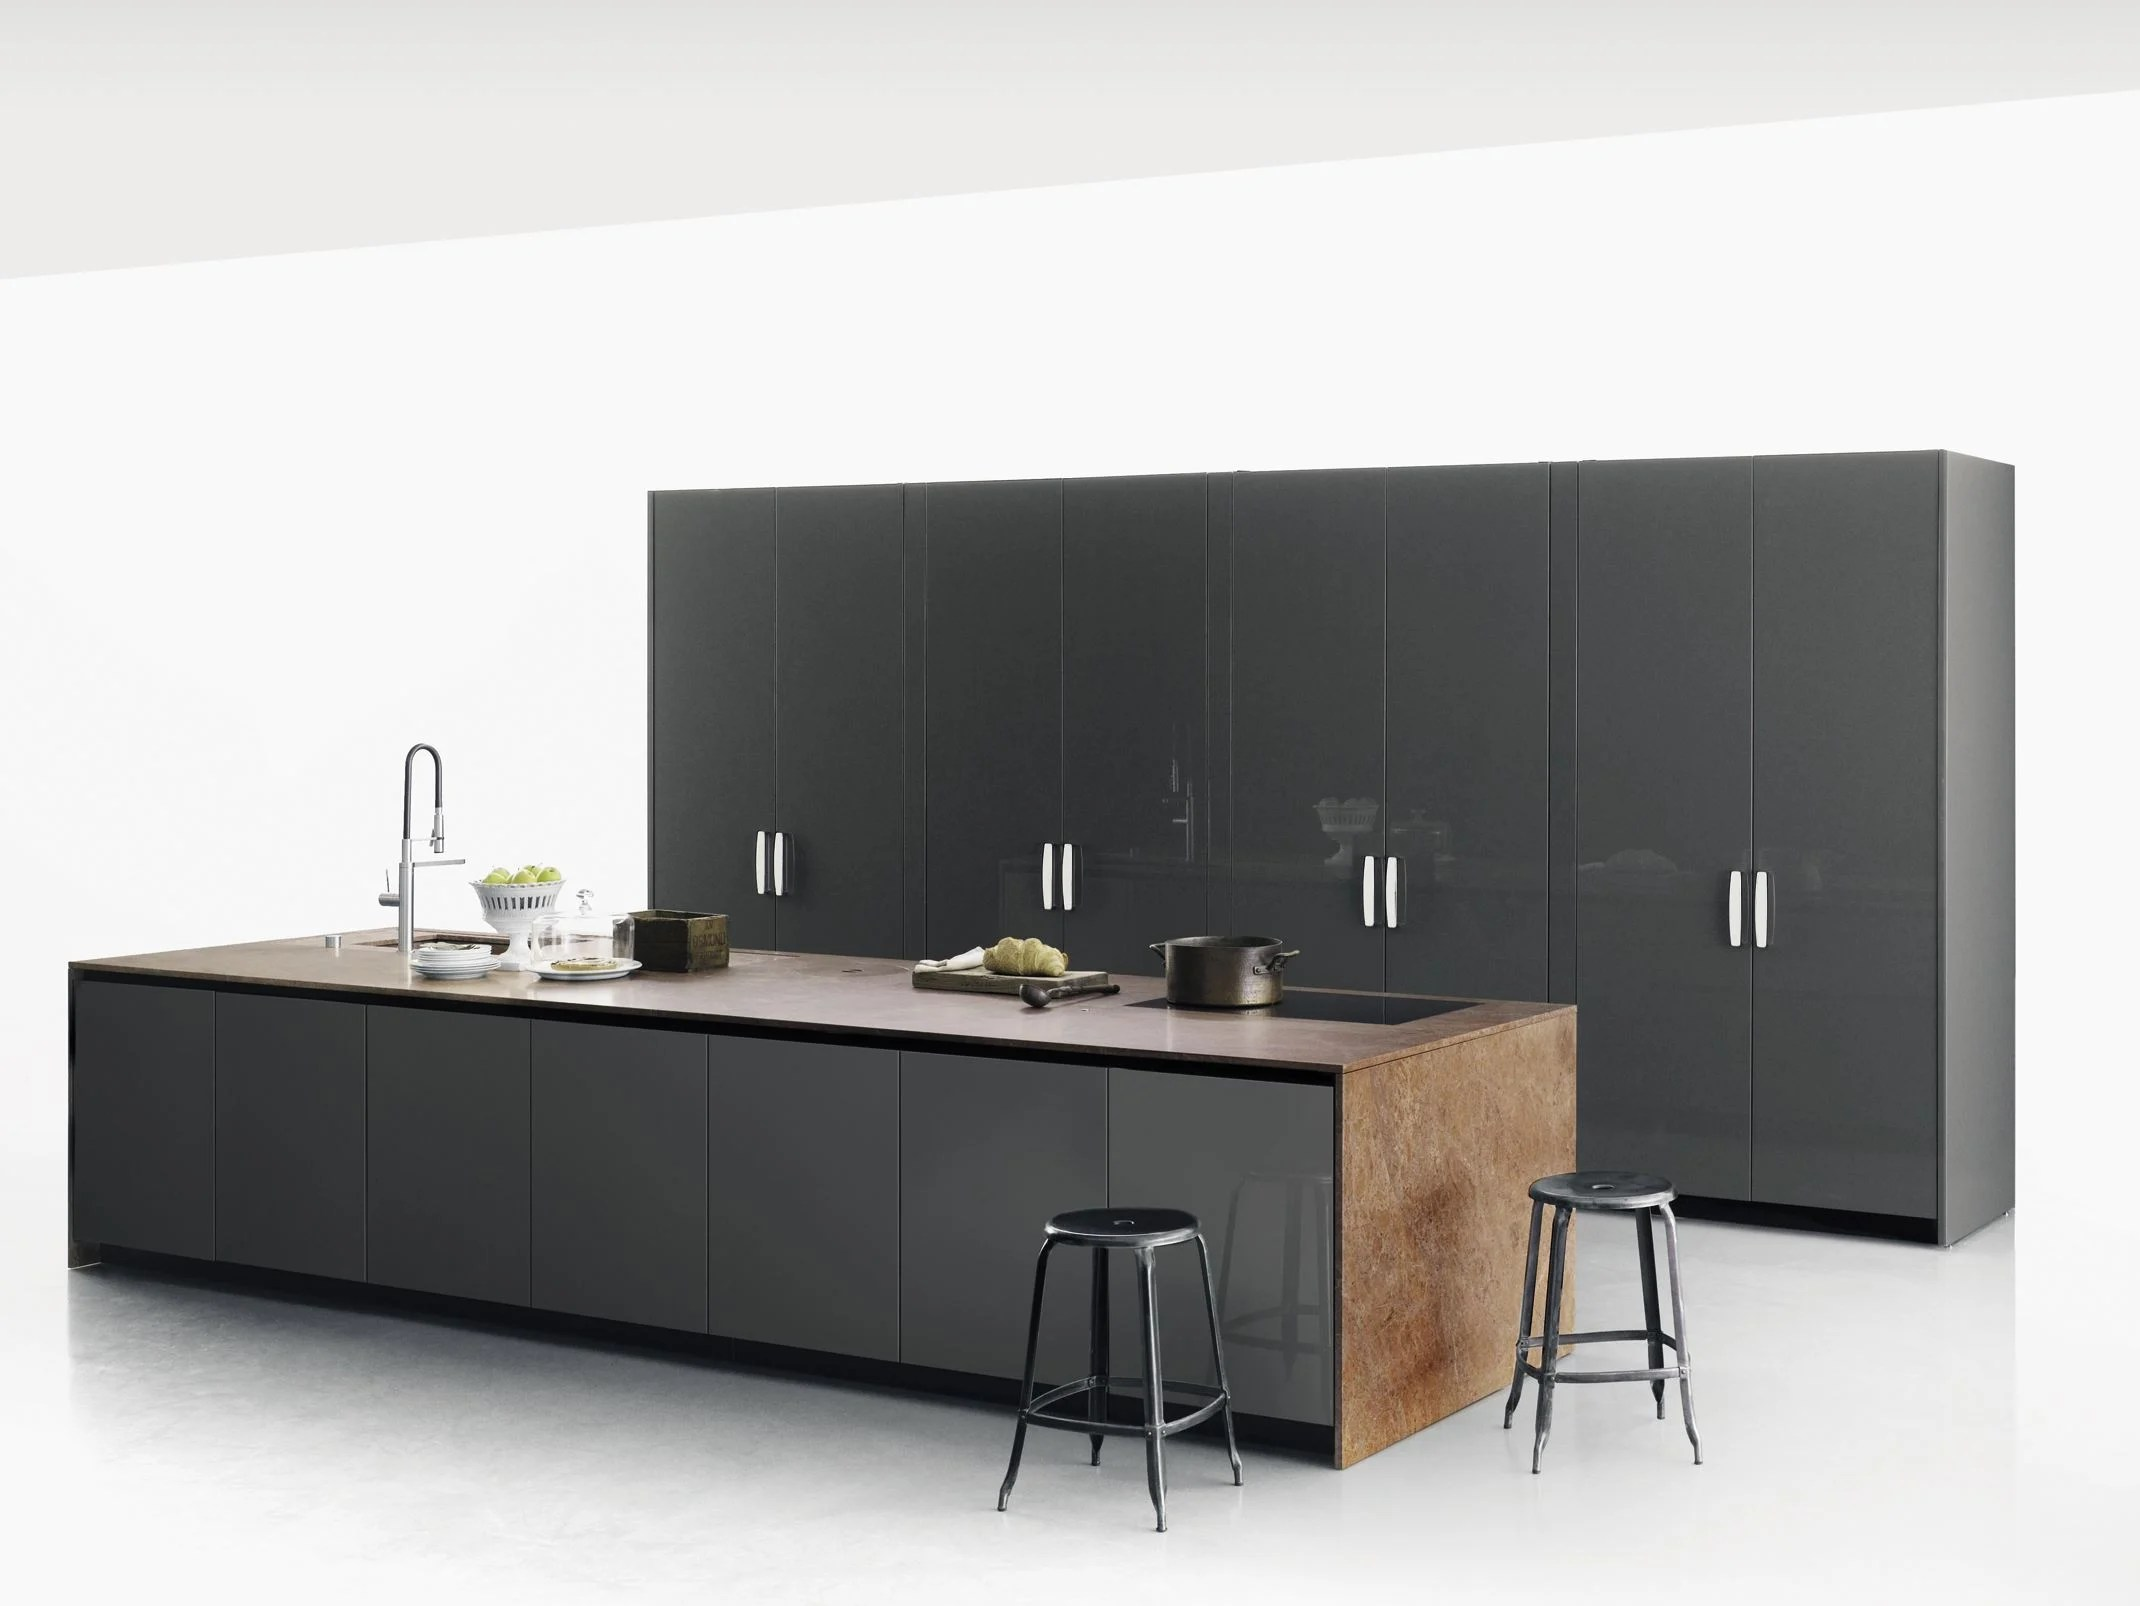 123 Top Cuisine Stone Kitchen With Island Xila By Boffi